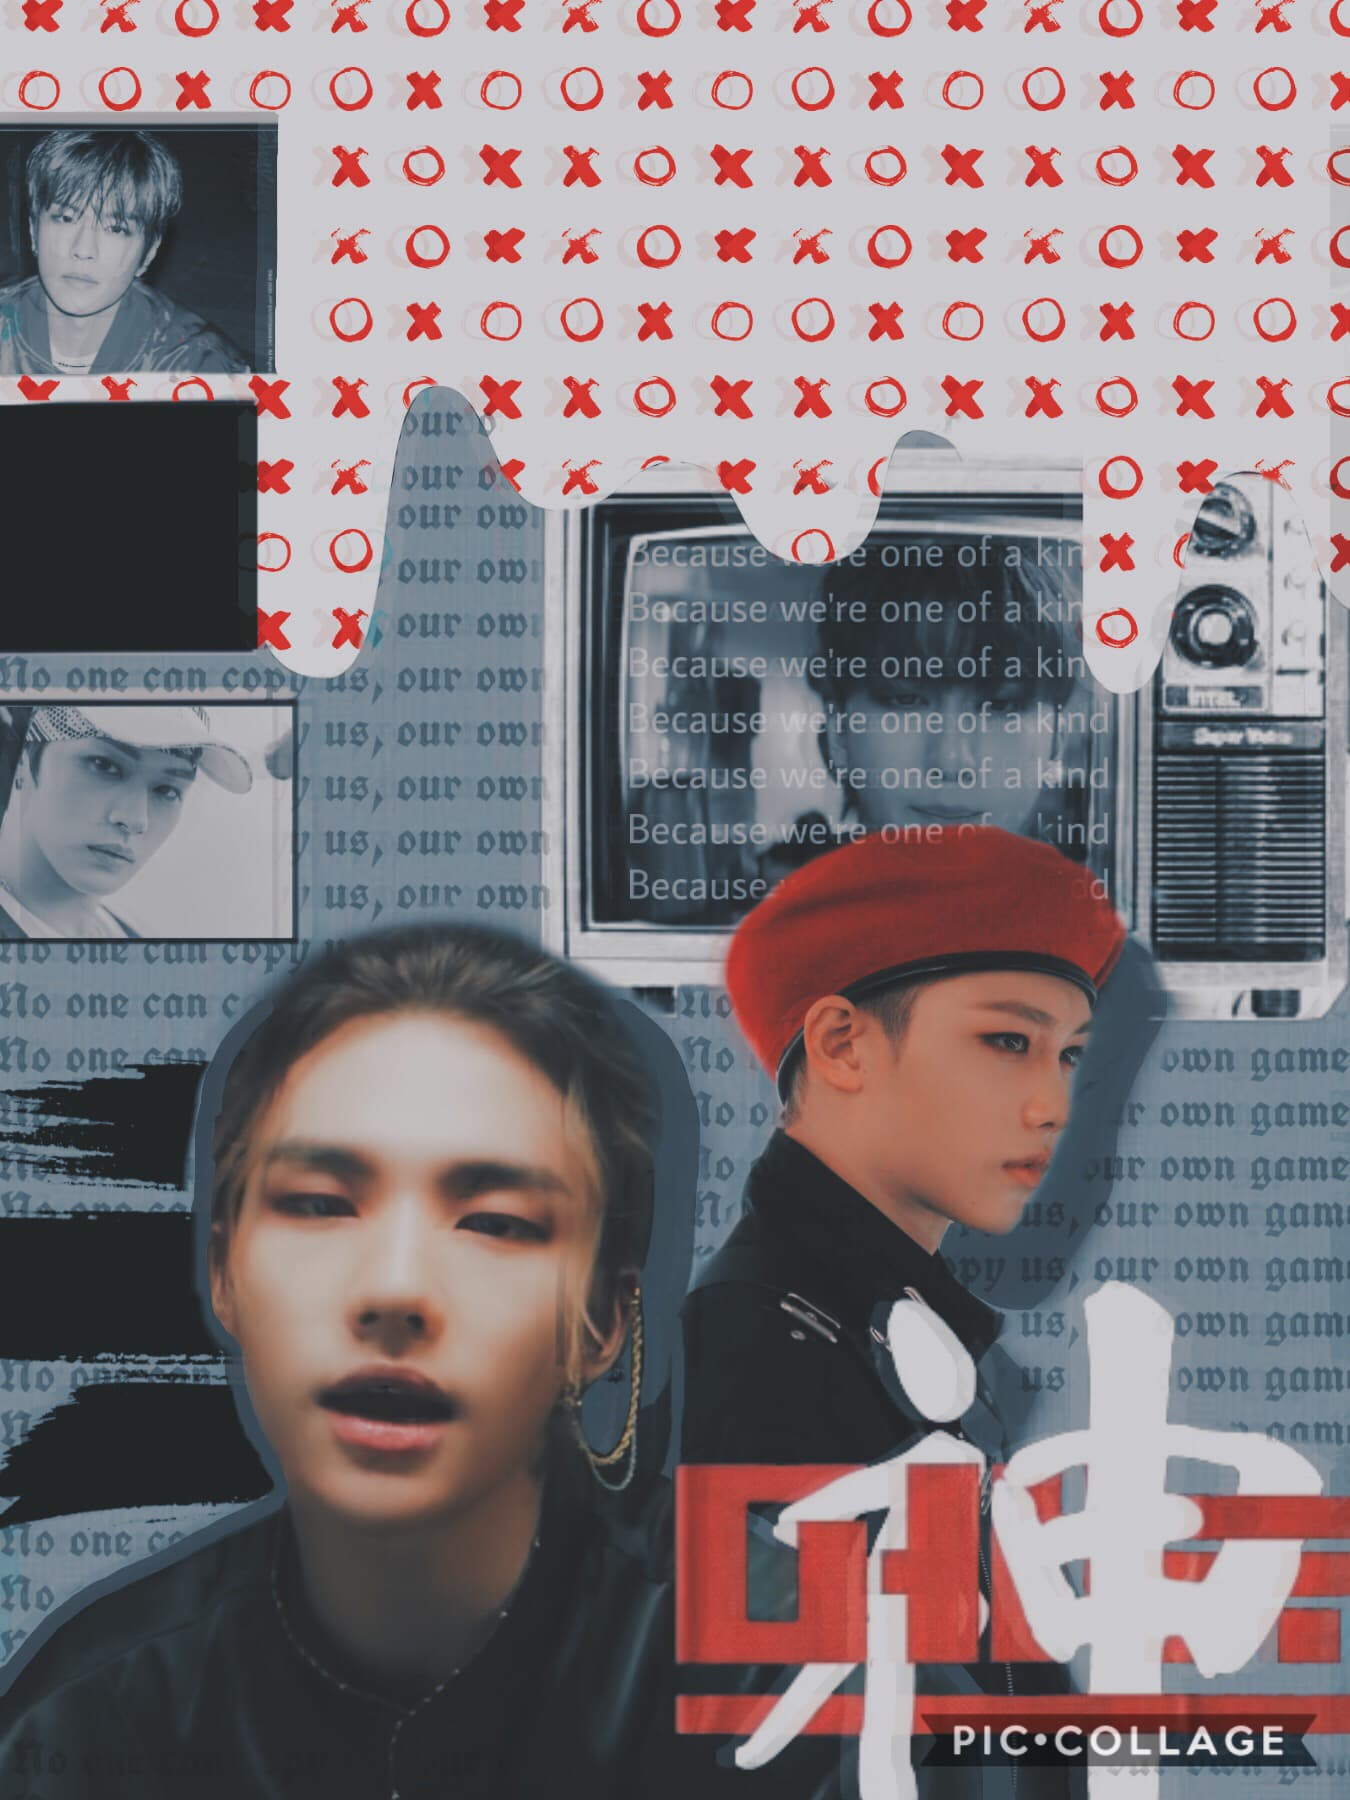 ⬇️PRESS⬇️ SKZ: GOD's MENU hi guys what's up here's a new edit , hope y'all like it! ( THIS WHOLE ABLUM IS FILLED WITH BOPS 😤👊💞)  E N J O Y ⚫️❤️⚫️❤️⚫️❤️⚫️❤️⚫️❤️⚫️❤️⚫️❤️⚫️❤️